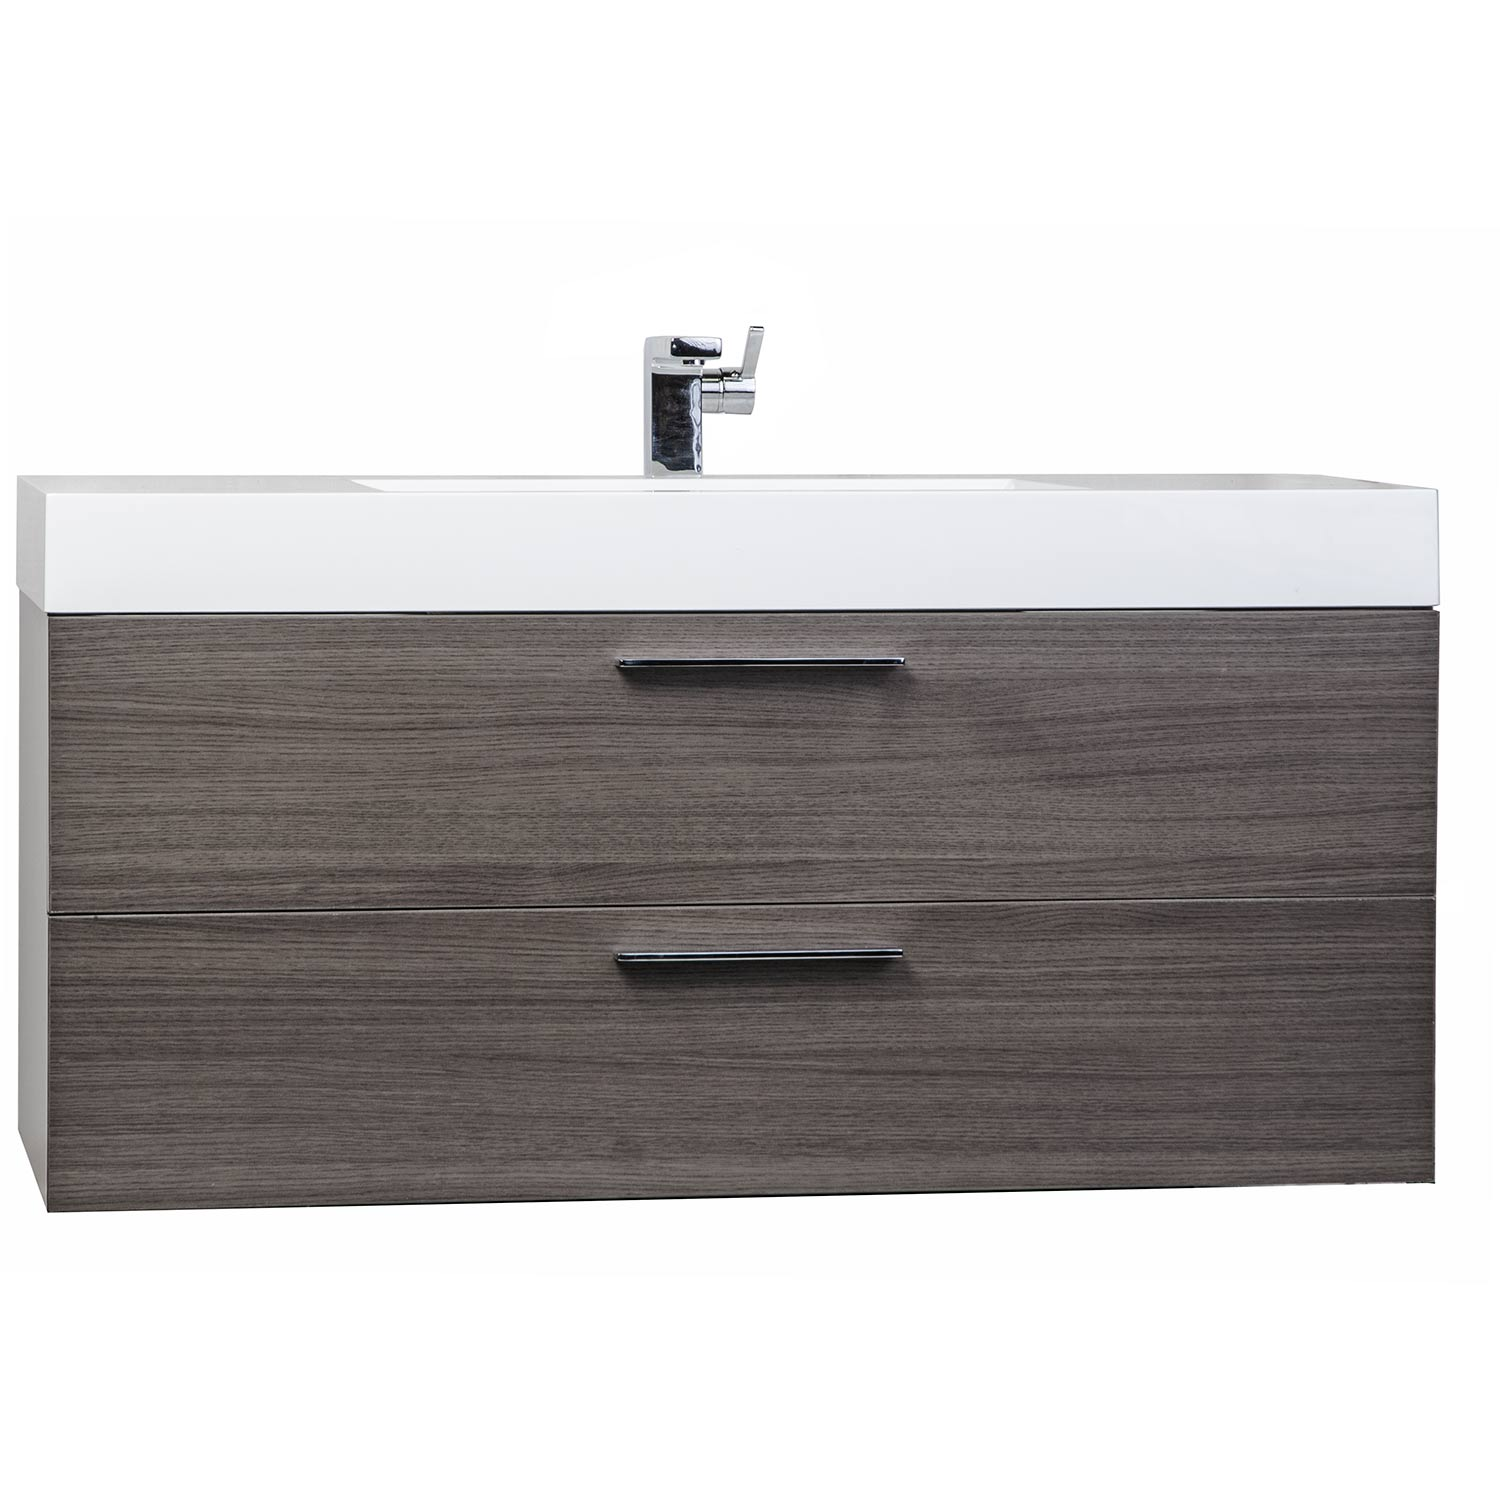 contemporary bathroom vanity grey oak optional legs rsl  -  contemporary bathroom vanity grey oak rslgo